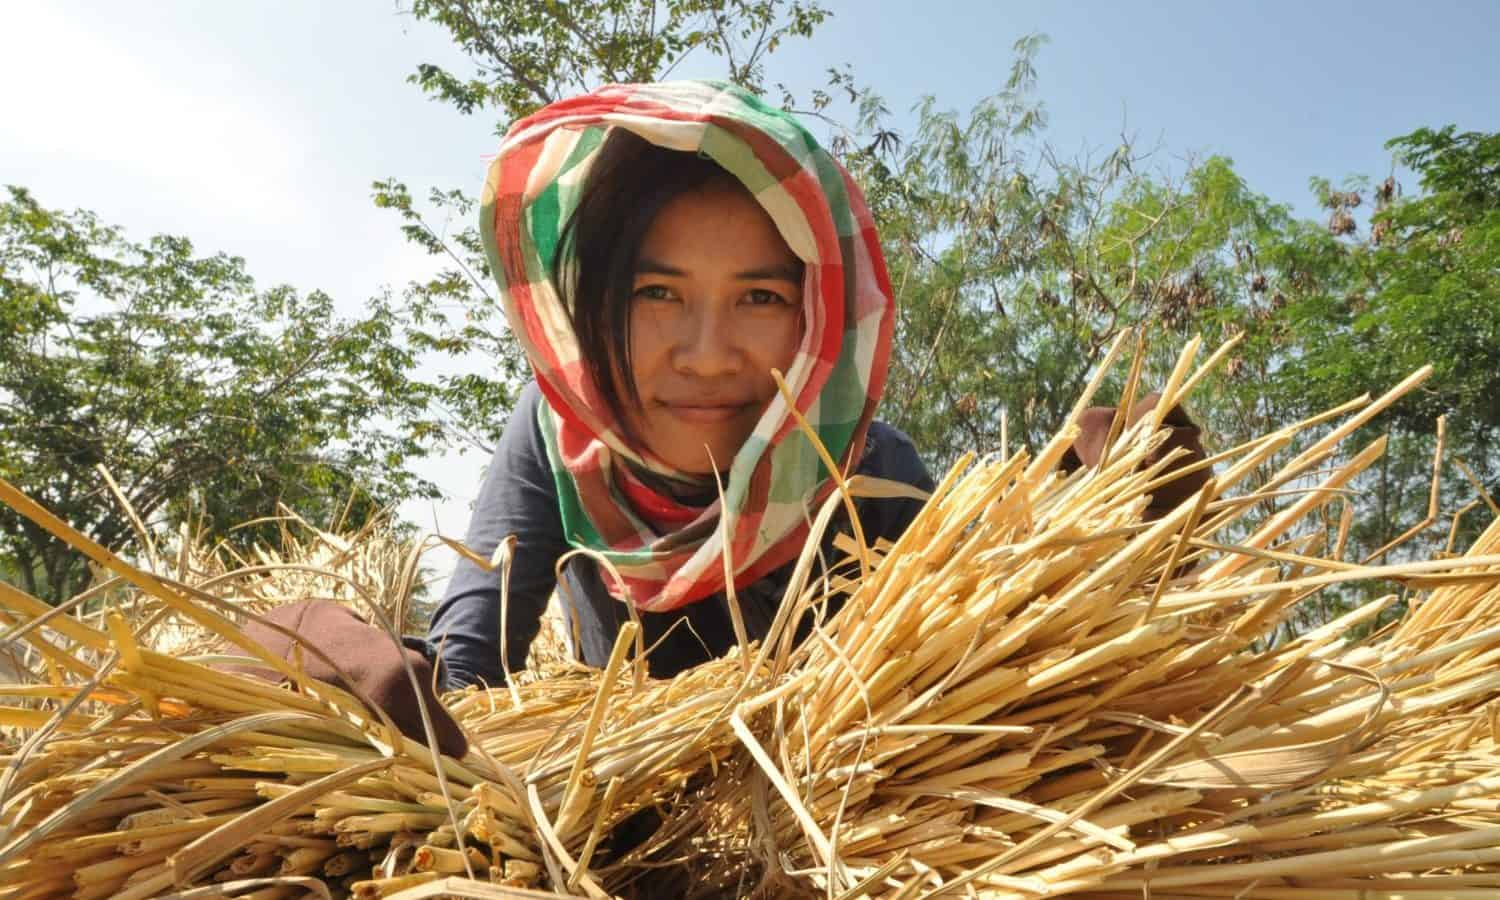 Strengthening the linkages between rural and urban areas is key to addressing hunger and poverty says the FAO 2017 State of Food and Agriculture report.